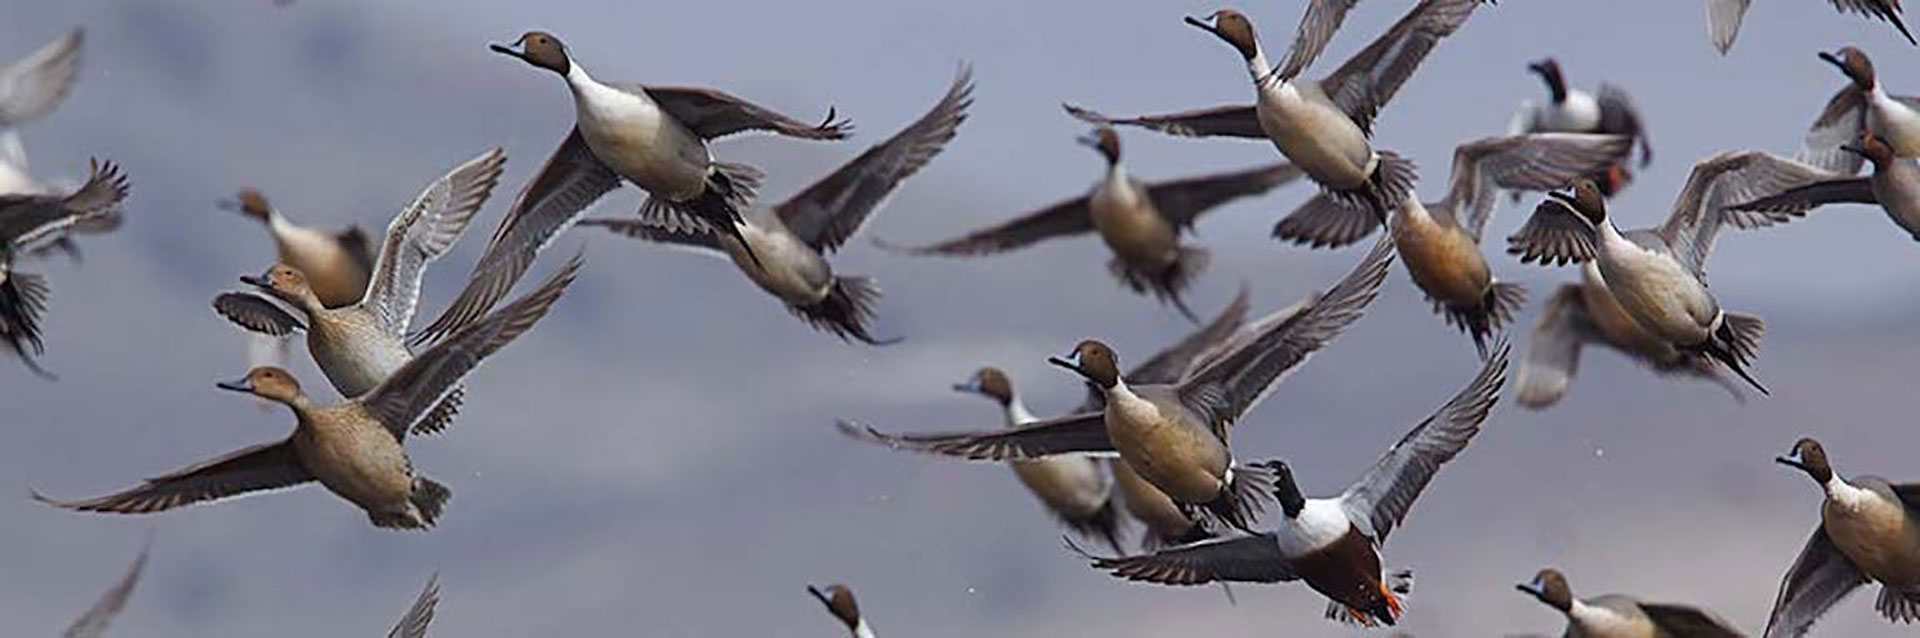 Kansas Waterfowl Hunts | Guided Waterfowl Hunts